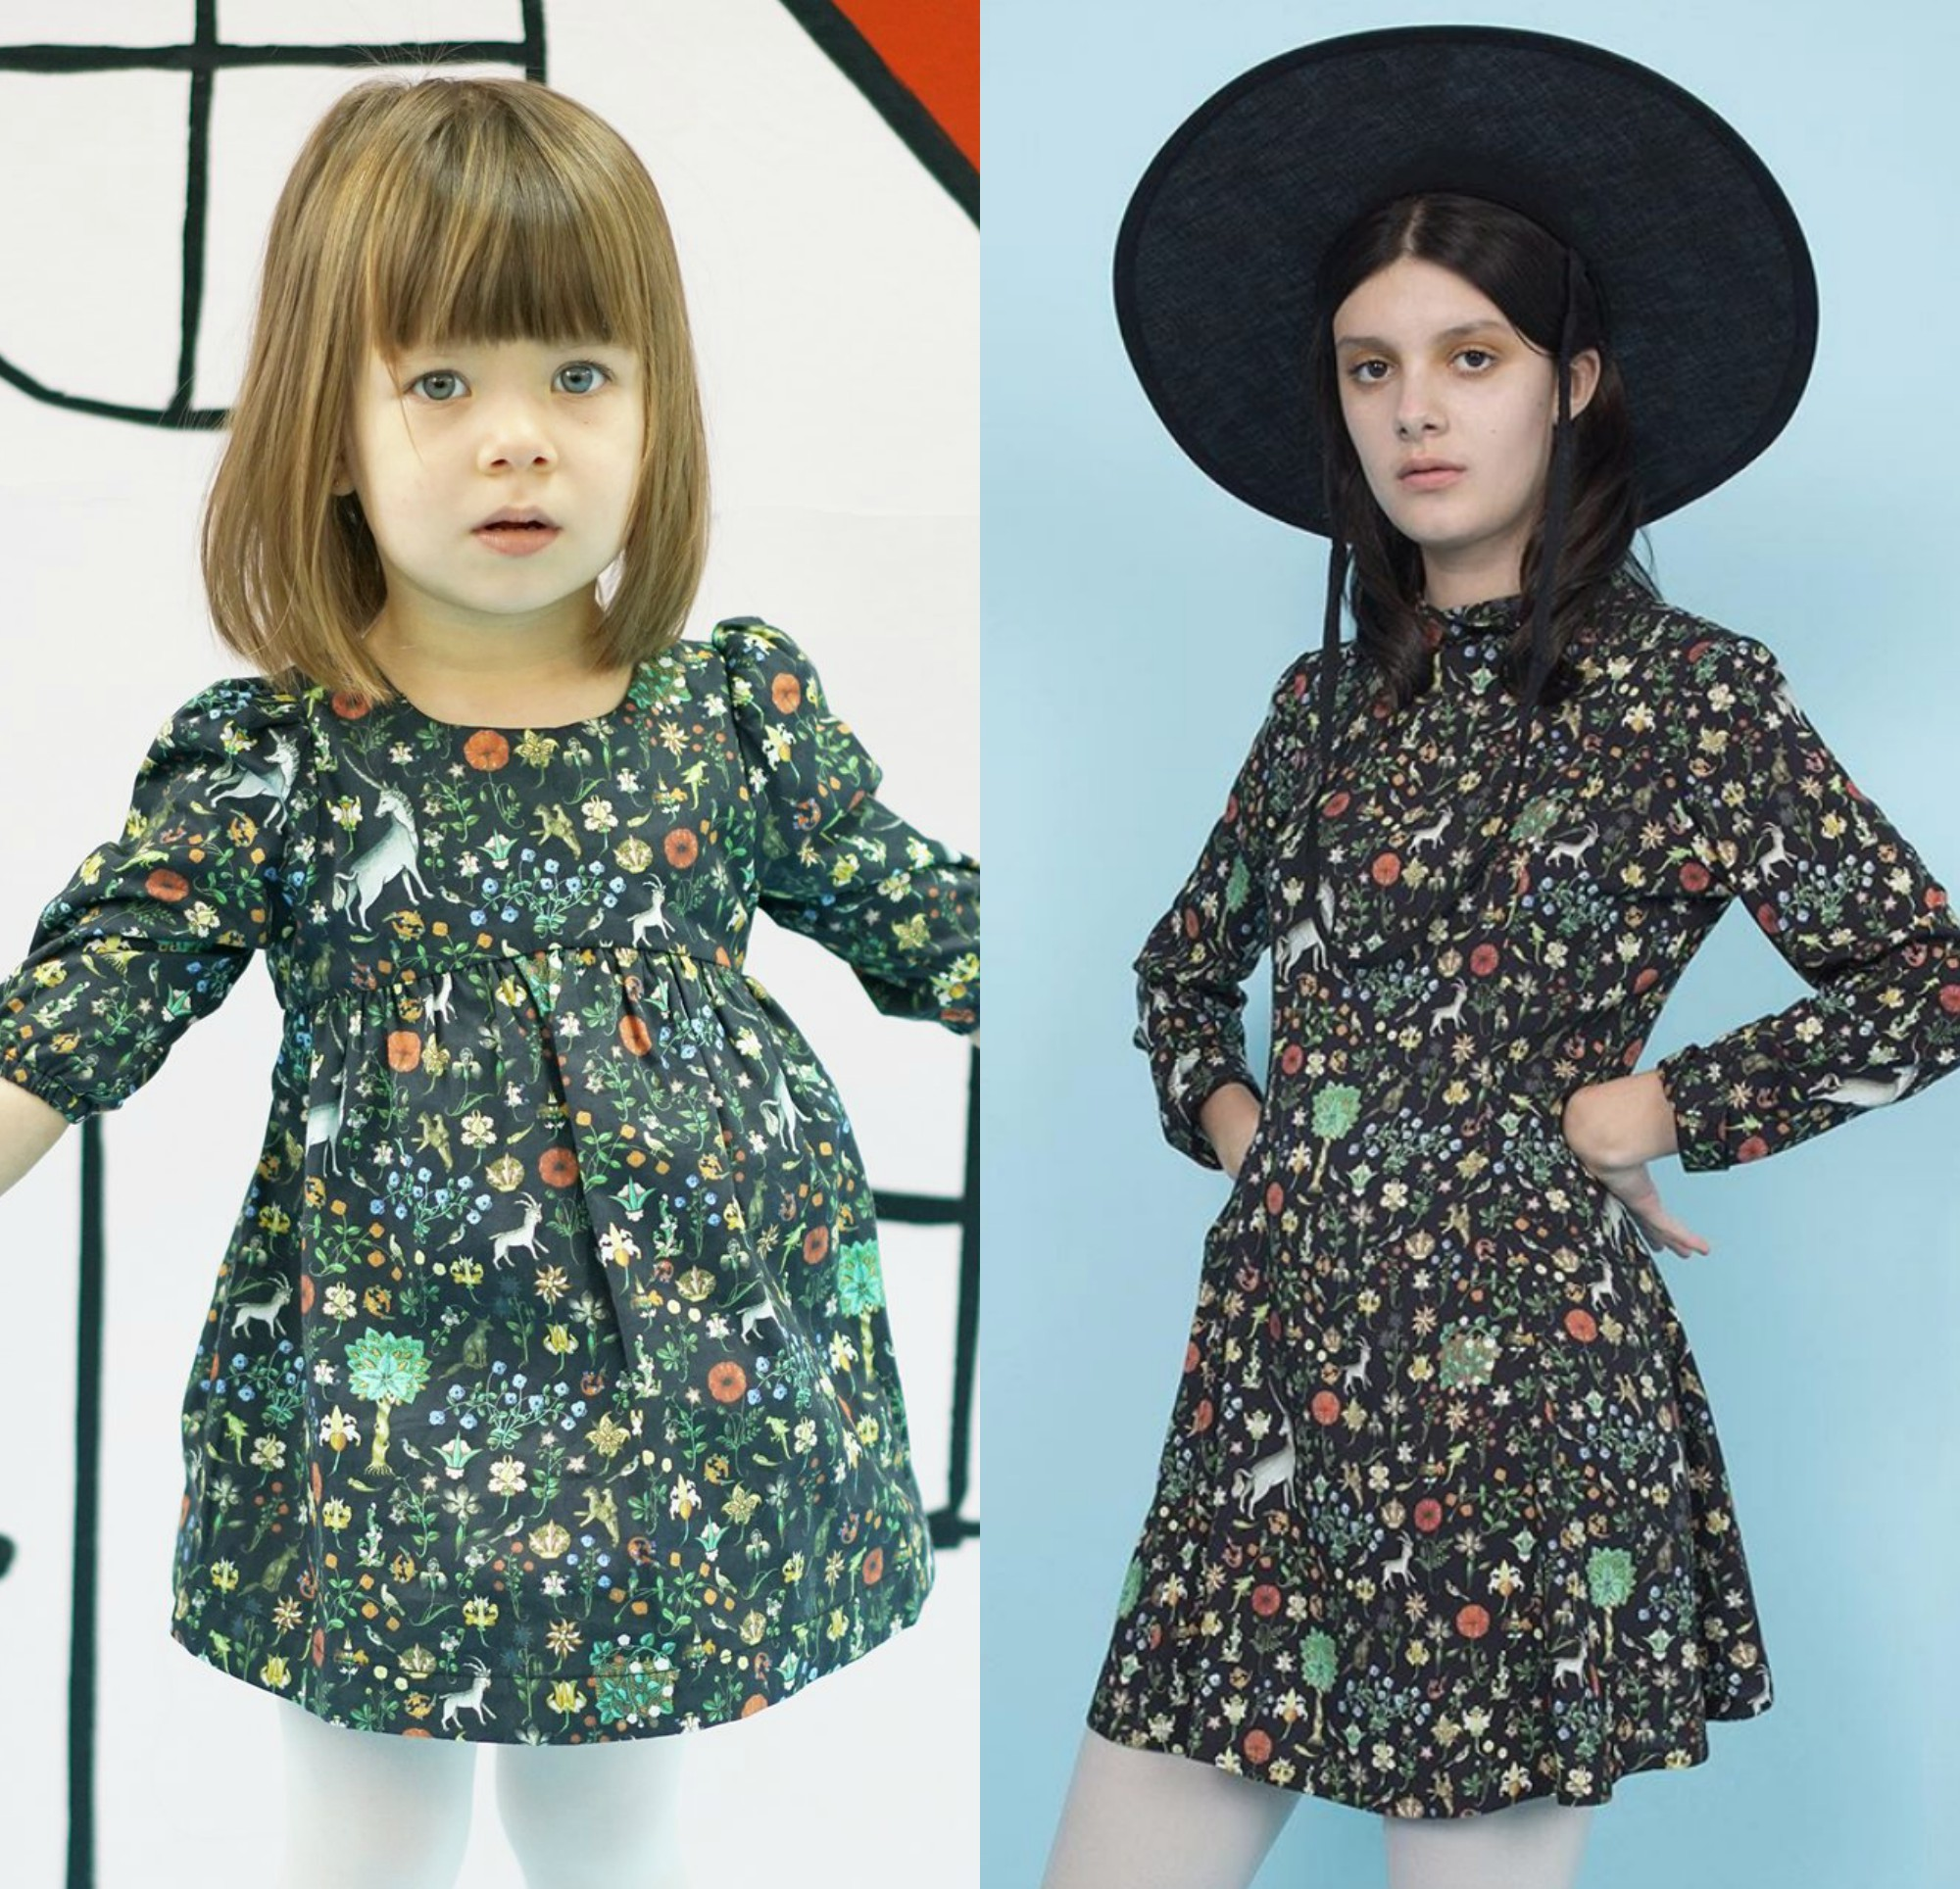 Samantha Pleet's new kid's line will let you be stylish twinsies with your mini-me